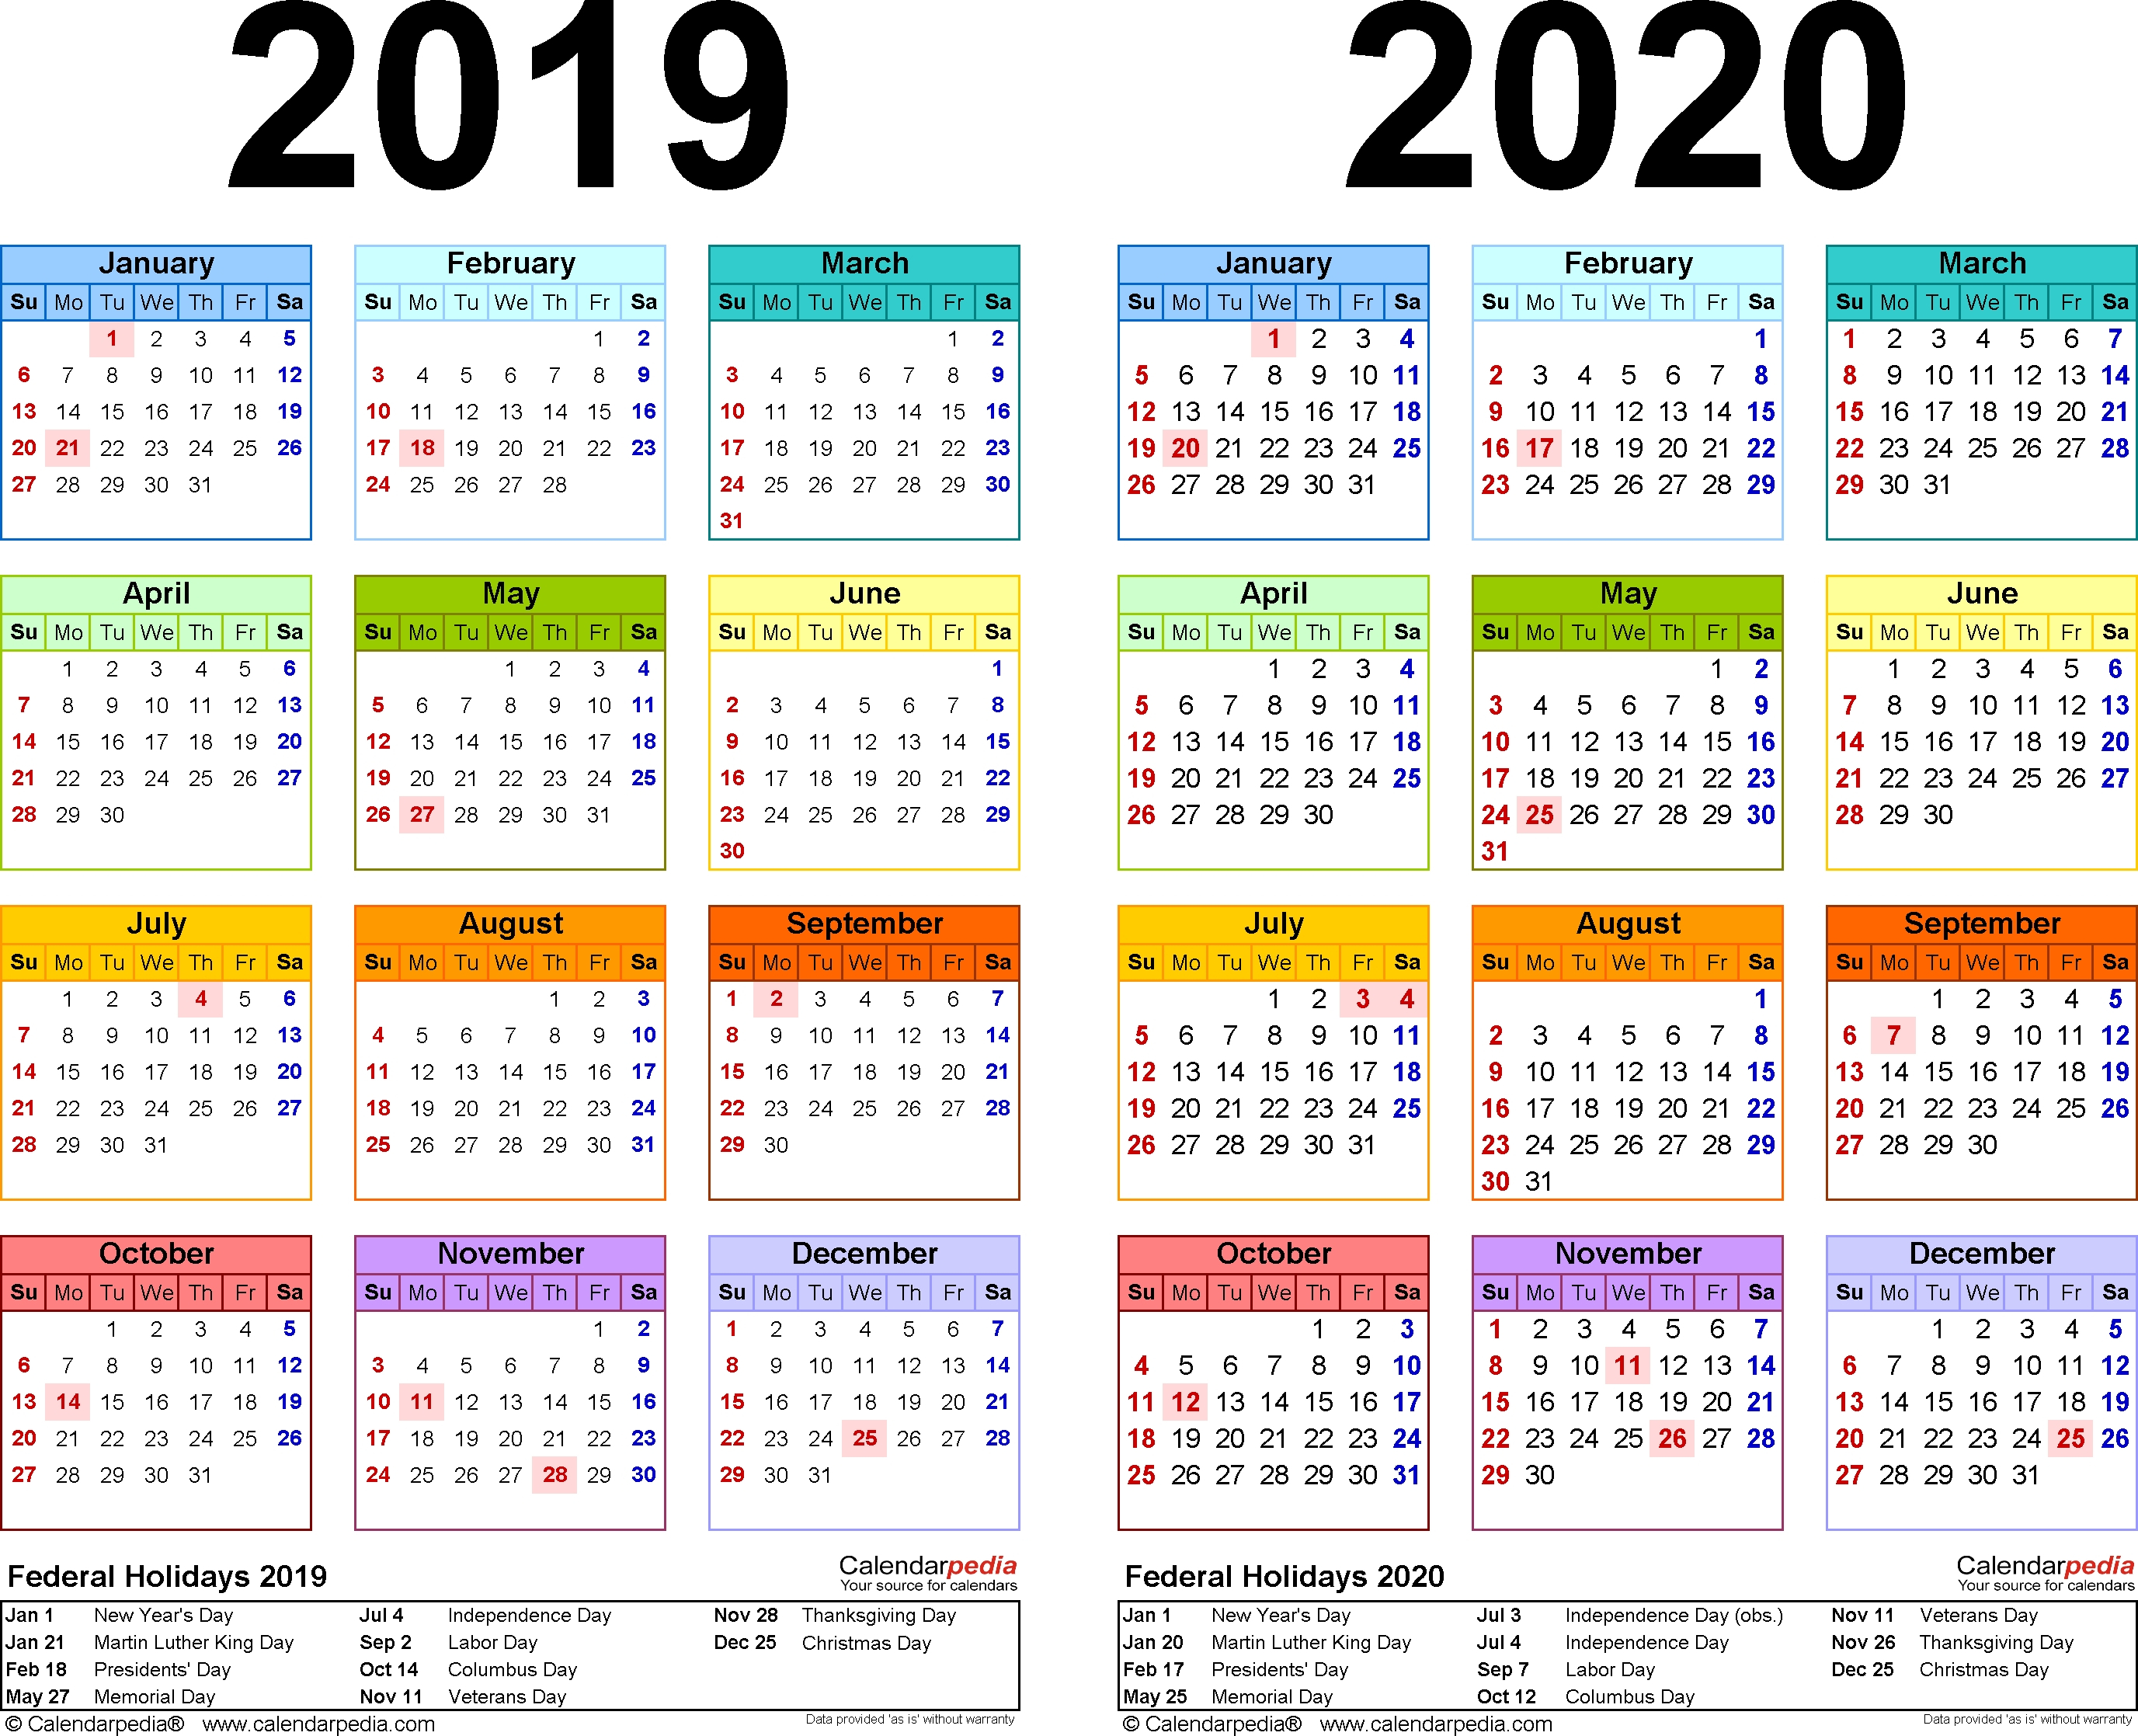 November 2020 Calendar Australia 2 - Wpa.wpart.co throughout 2020 Calendar Australian